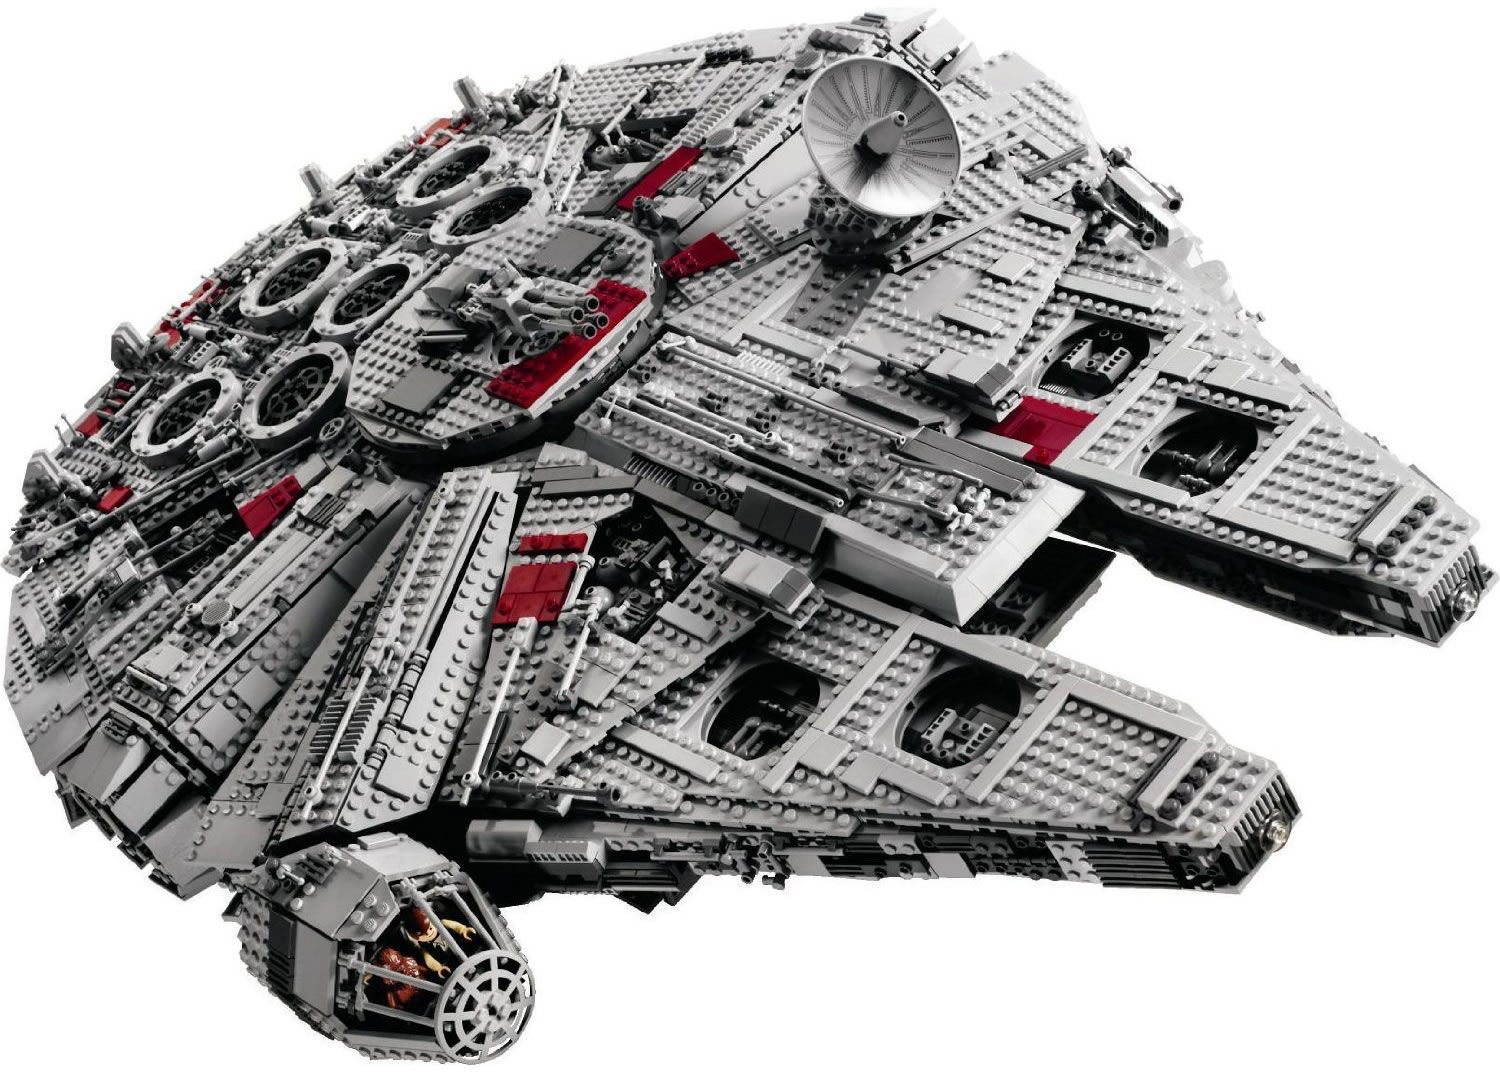 ... Wars 7 LEGO Sets Revealed; Contains New Millennium Falcon | Collider